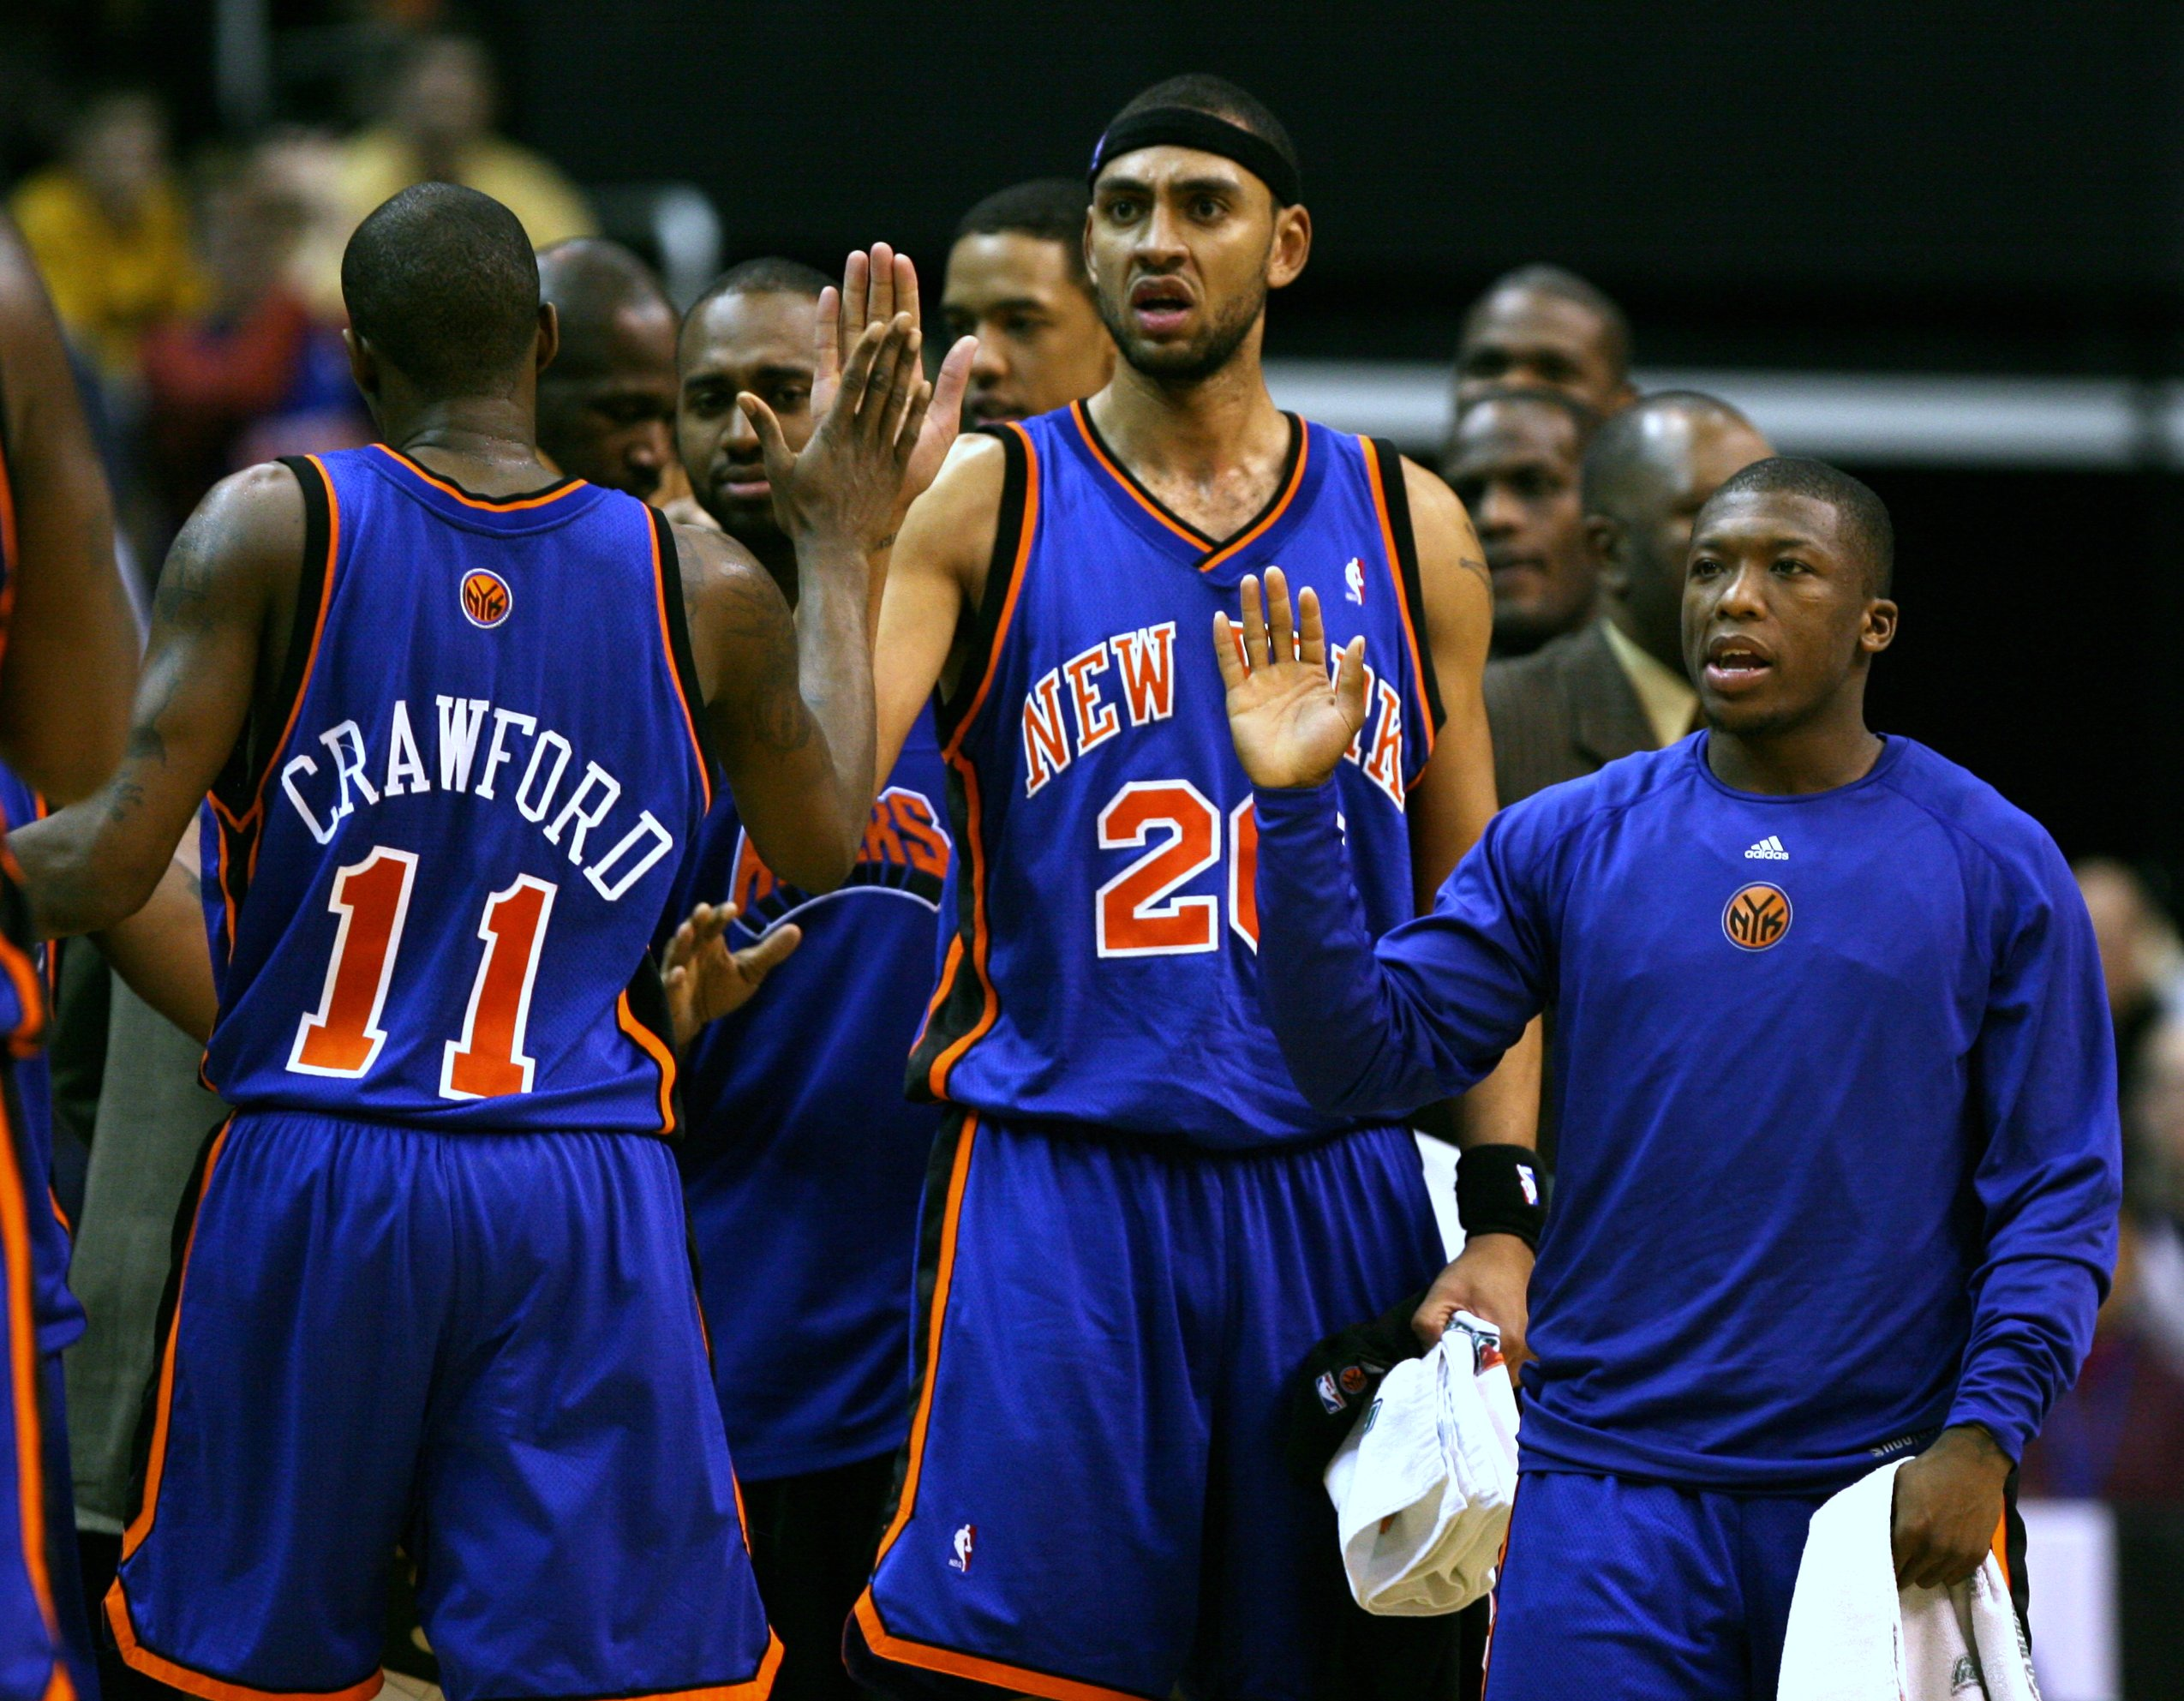 How Randle & Thibodeau Have Transformed the New York Knicks